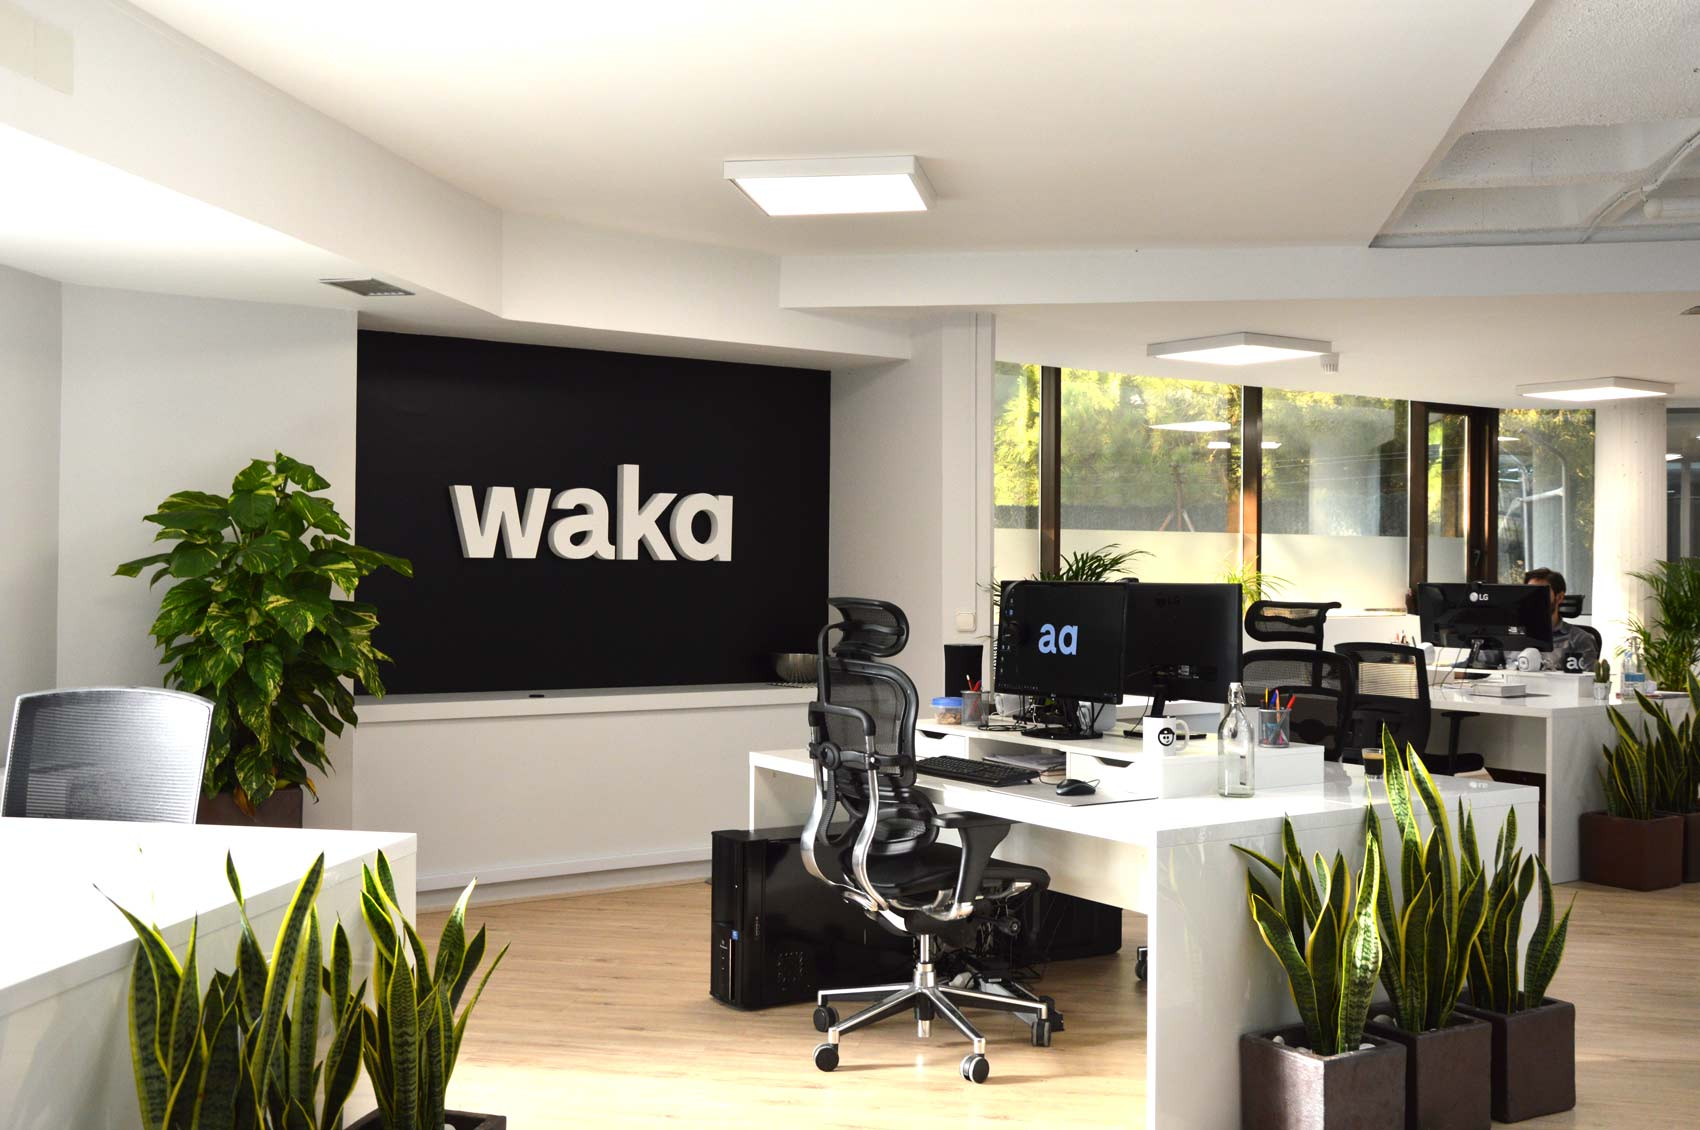 Waka office in Madrid